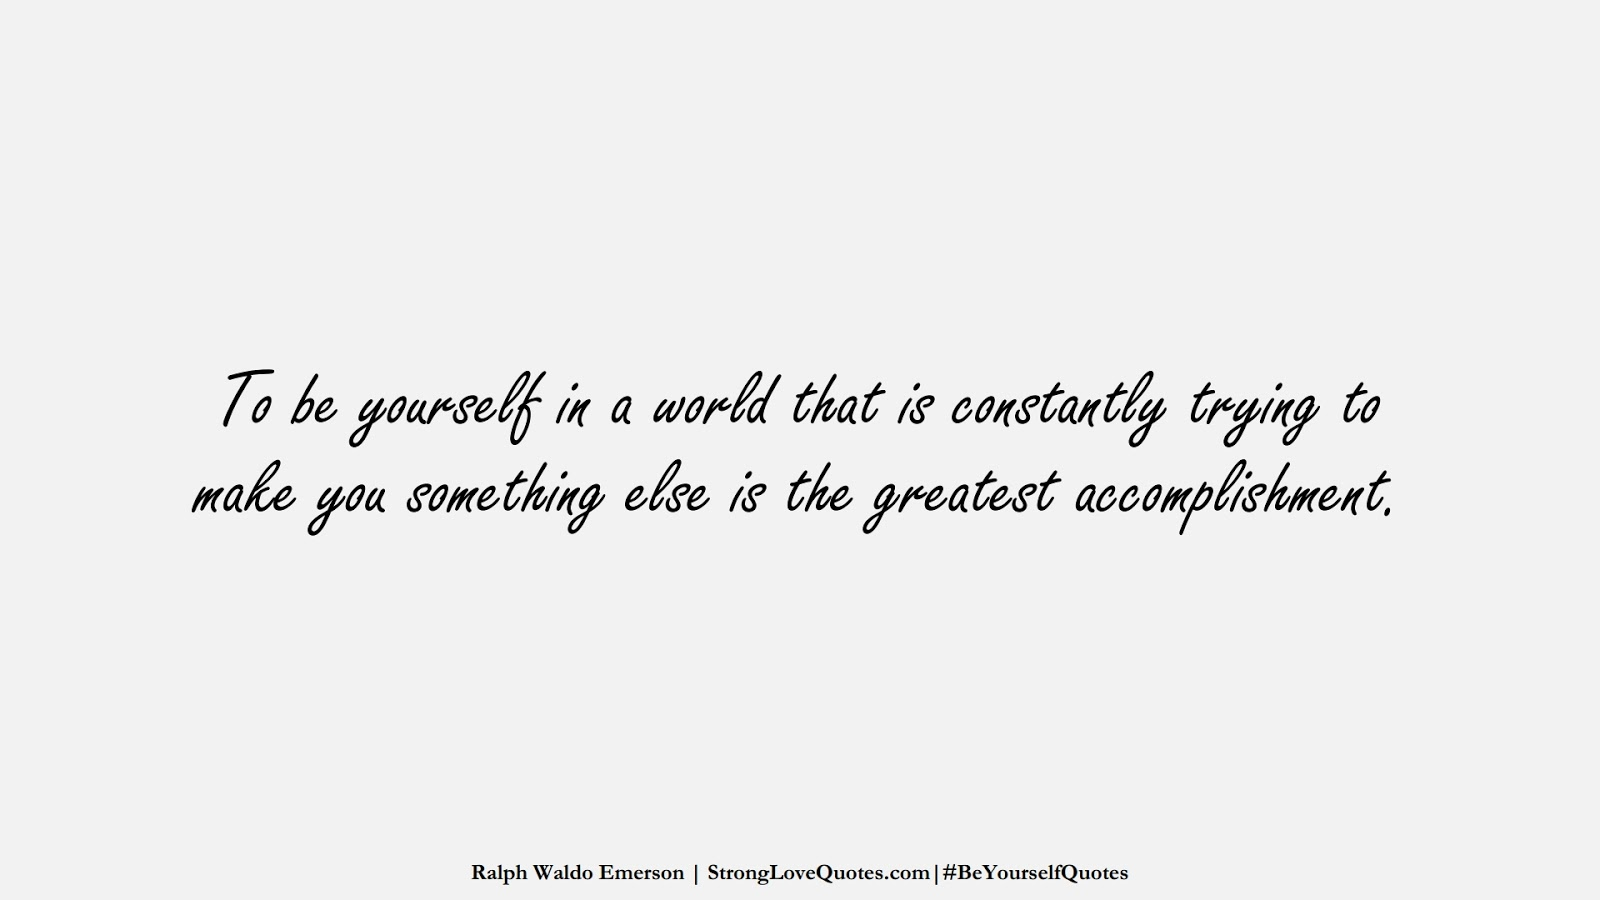 To be yourself in a world that is constantly trying to make you something else is the greatest accomplishment. (Ralph Waldo Emerson);  #BeYourselfQuotes